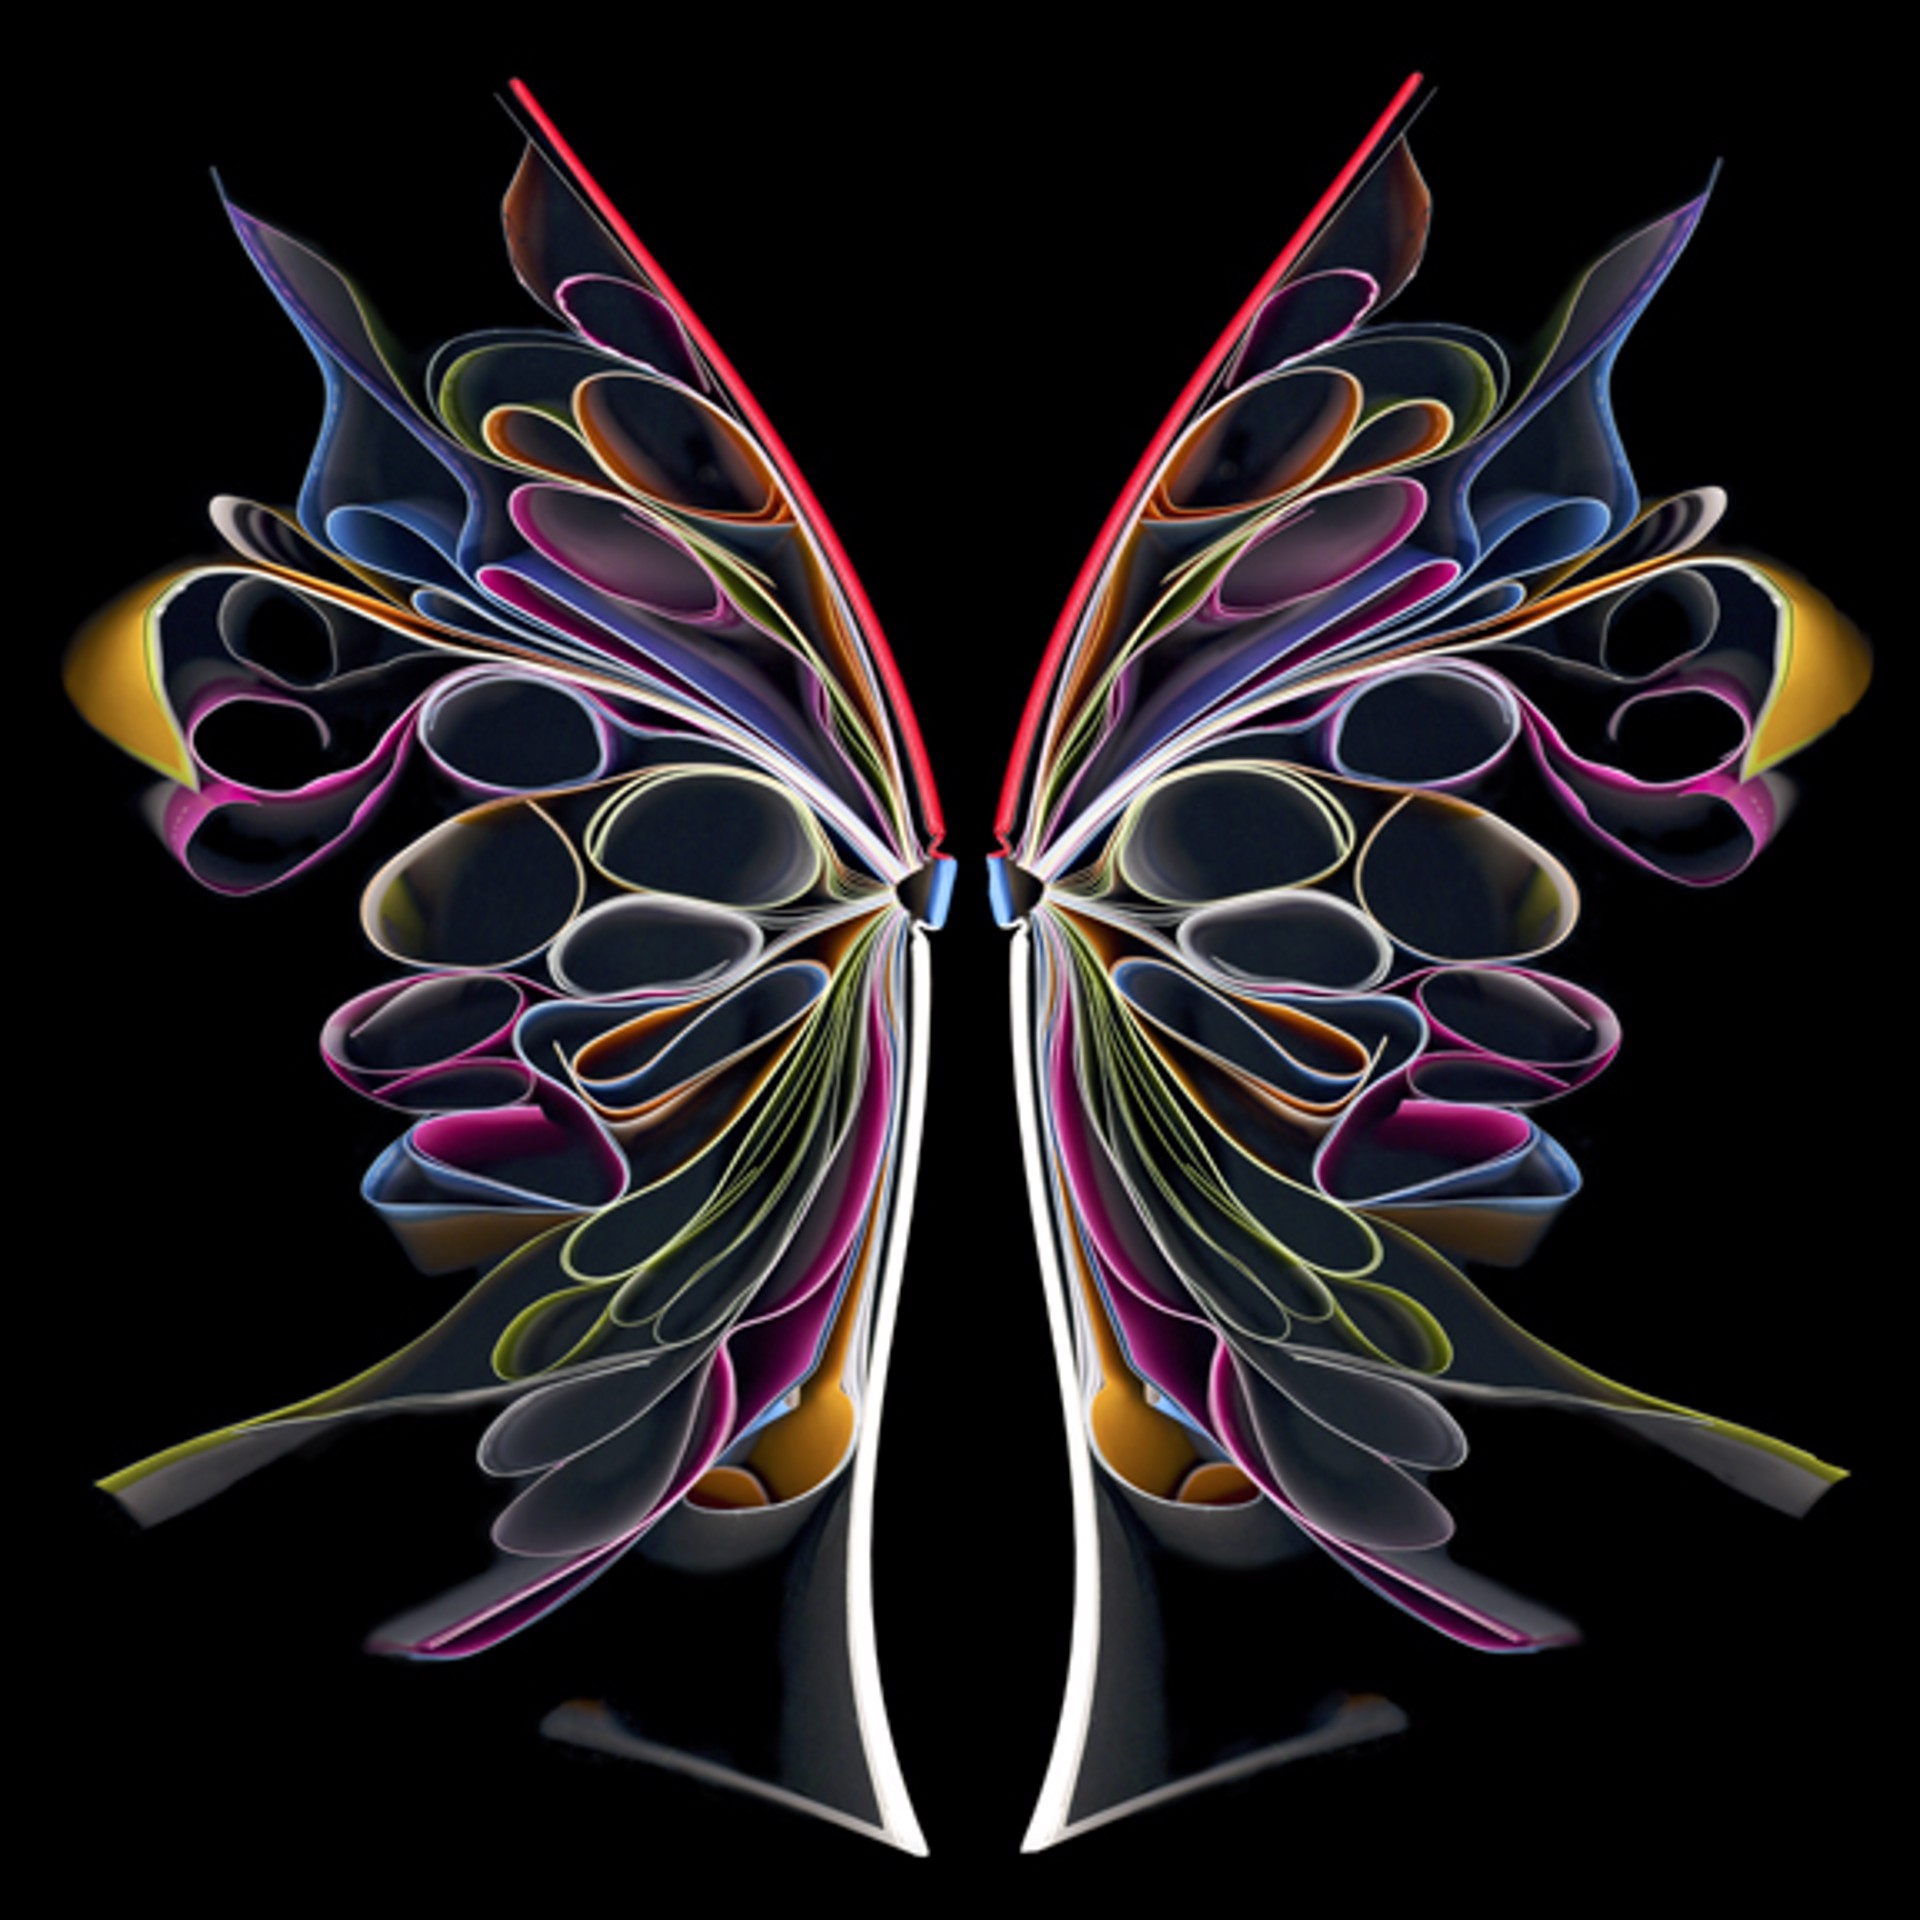 Butterfly 2 by Cara Barer